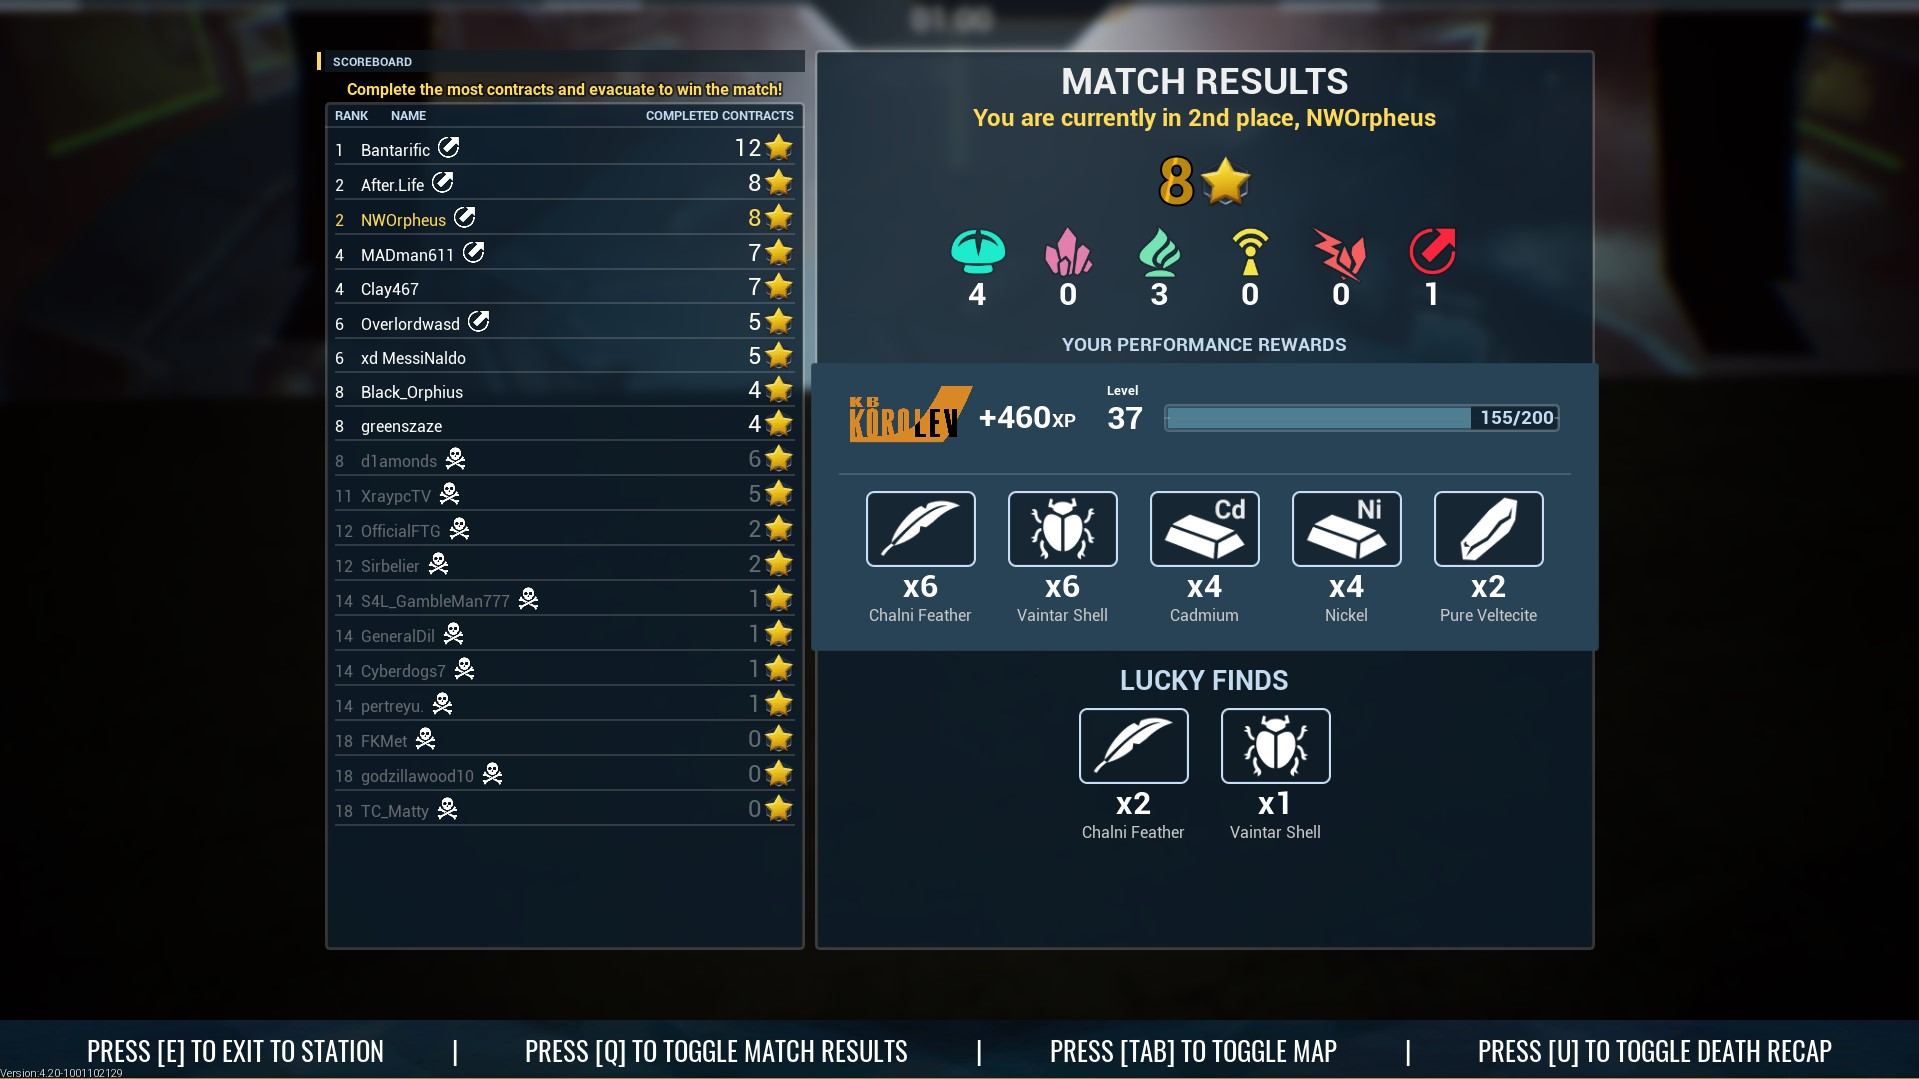 The Cycle Match Results Screenshot